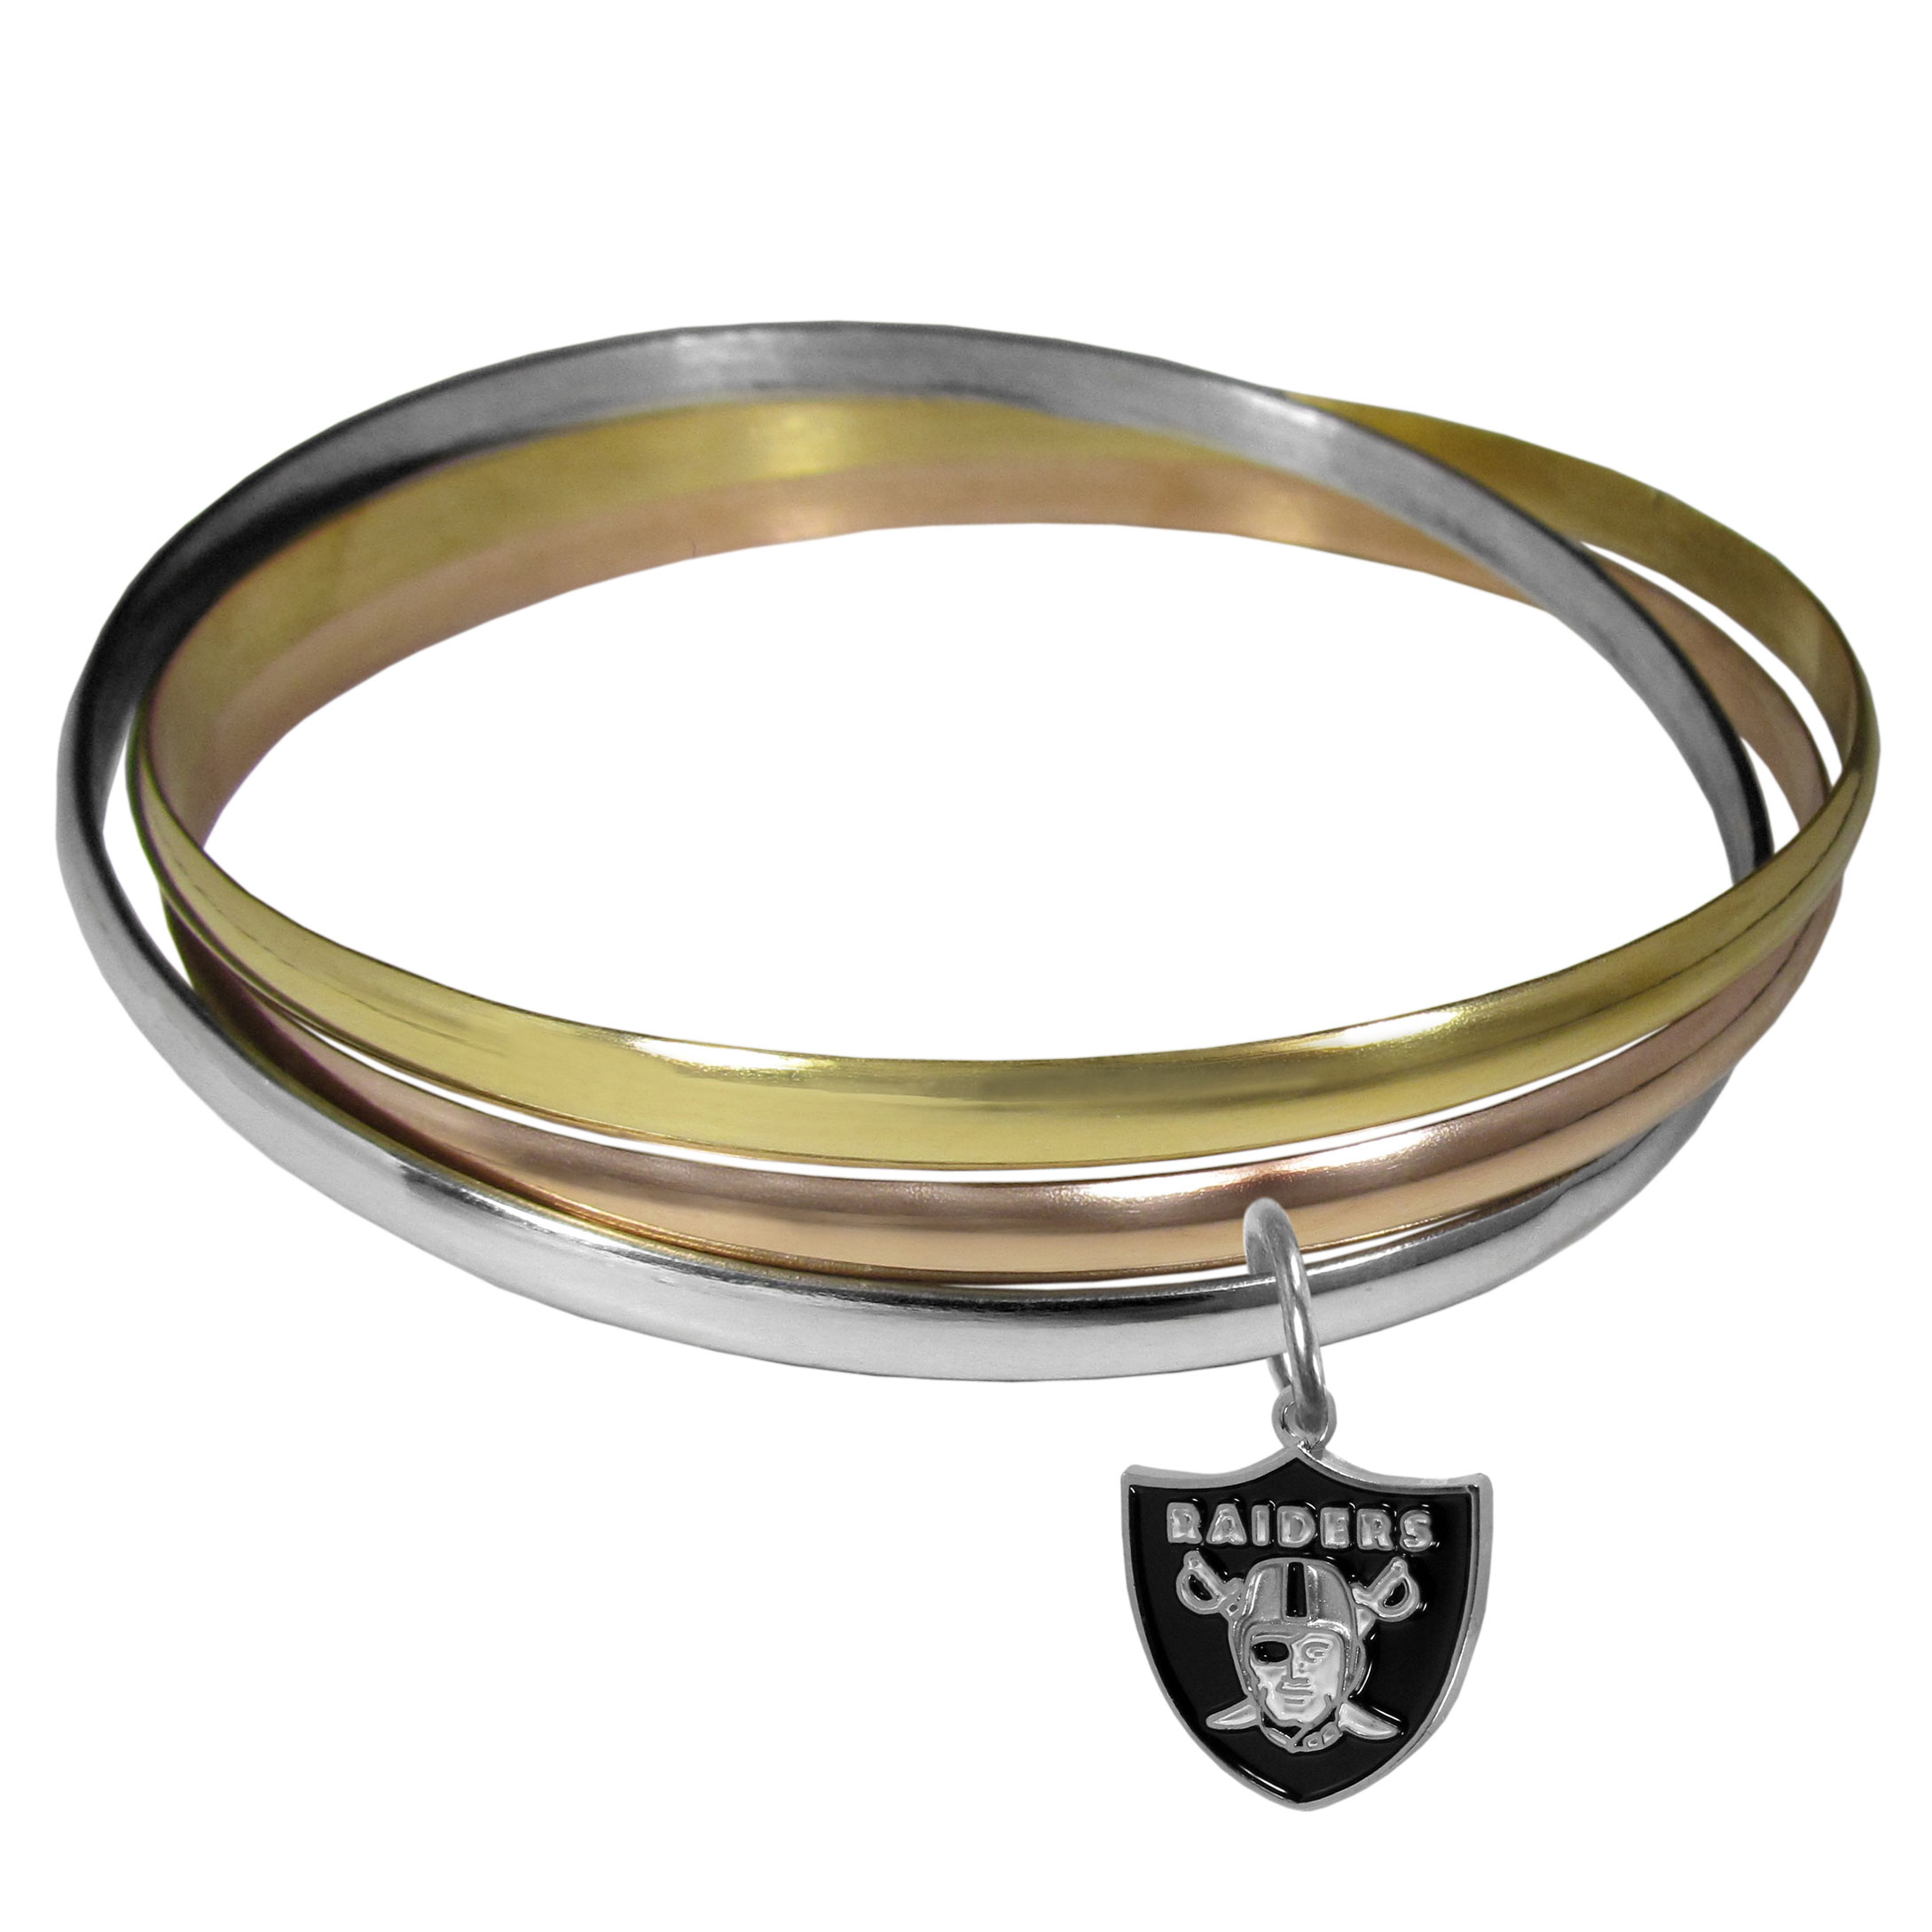 Oakland Raiders Tri-color Bangle Bracelet - These beautiful bangles come in a interlocking style and feature a fully cast Oakland Raiders charm with enameled team colors. The bracelet has a silver toned bangle, gold tone bangle and brass toned bangle.